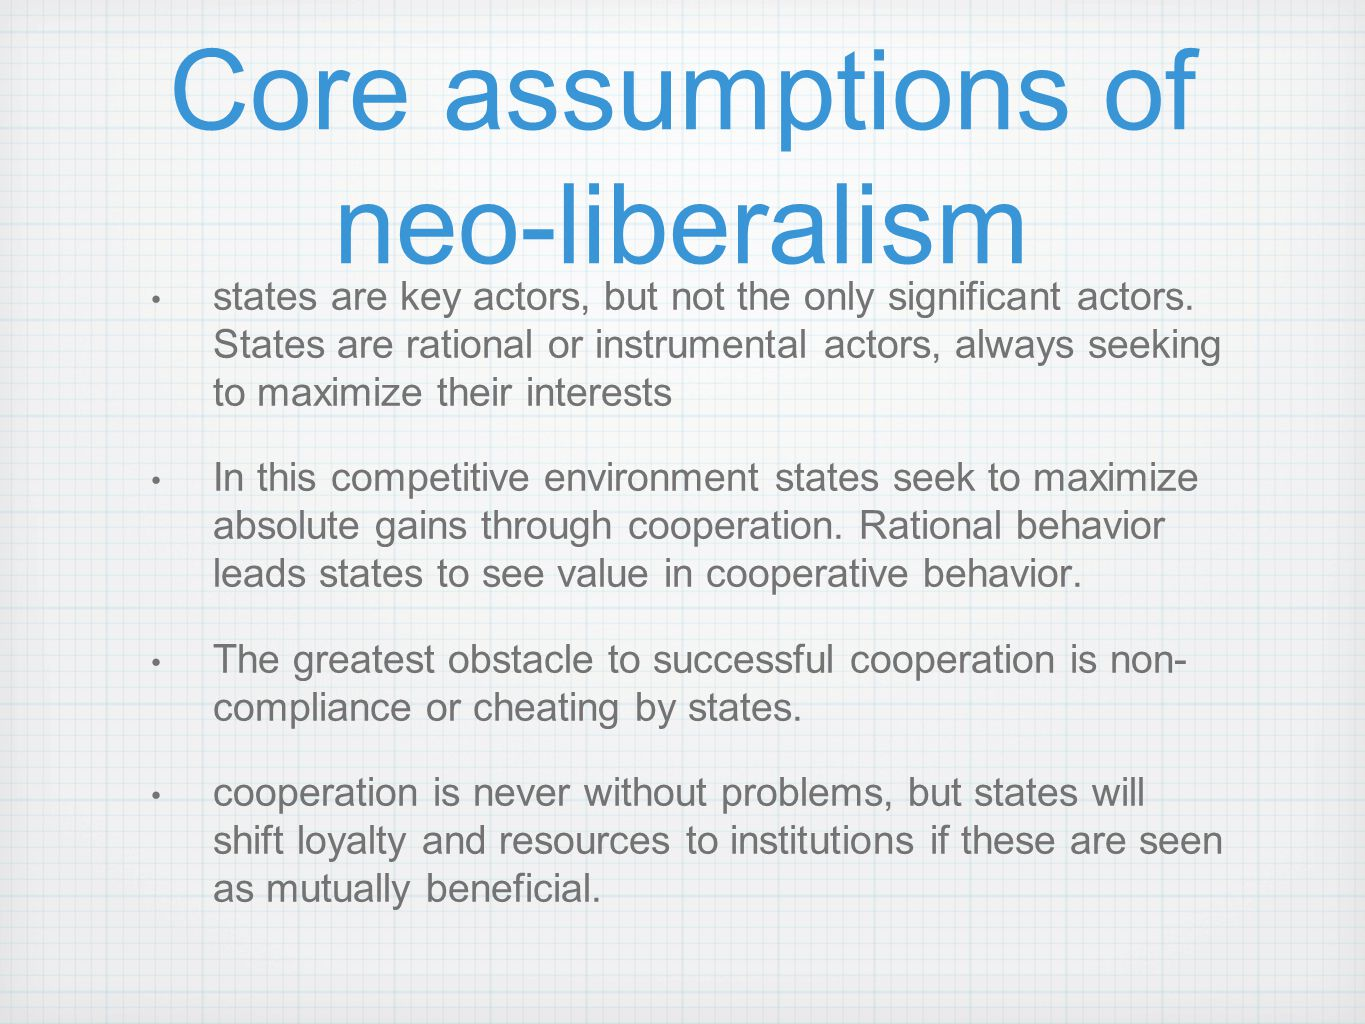 Core assumptions of neo-liberalism states are key actors, but not the only significant actors. States are rational or instrumental actors, always seek